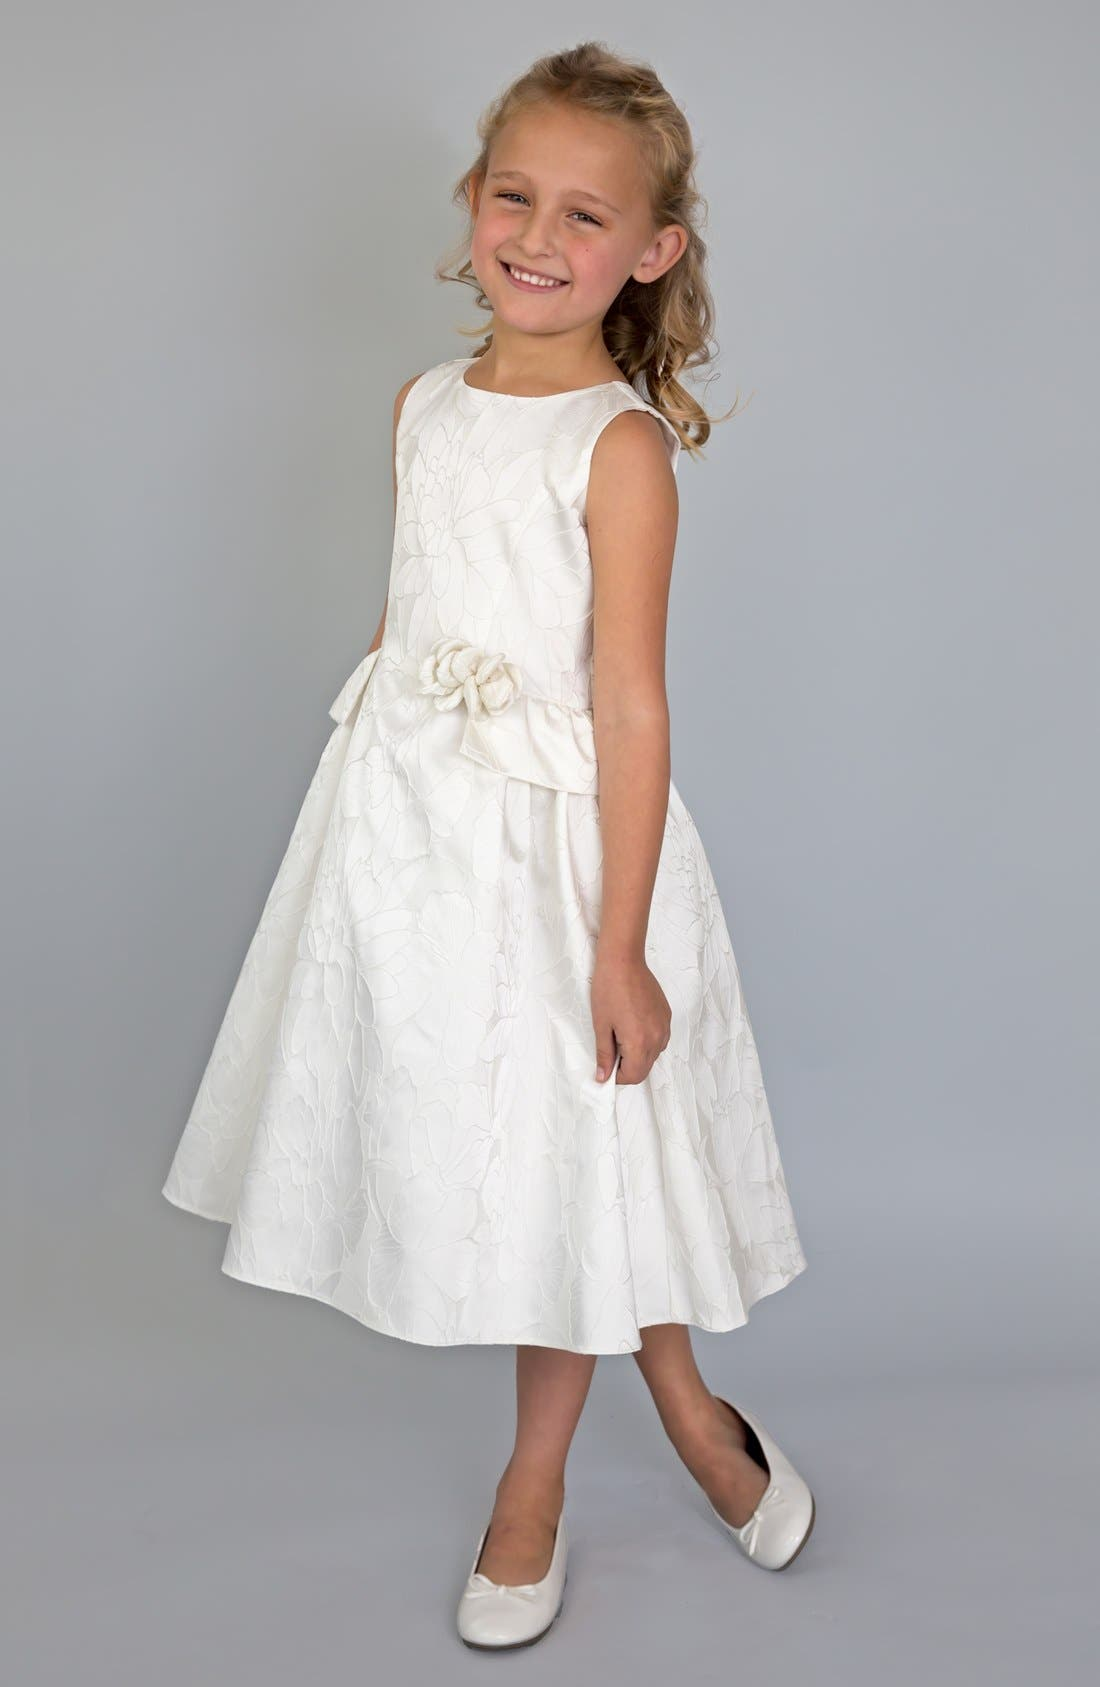 Main Image - Us Angels Peplum Brocade Dress (Toddler Girls, Little Girls & Big Girls)